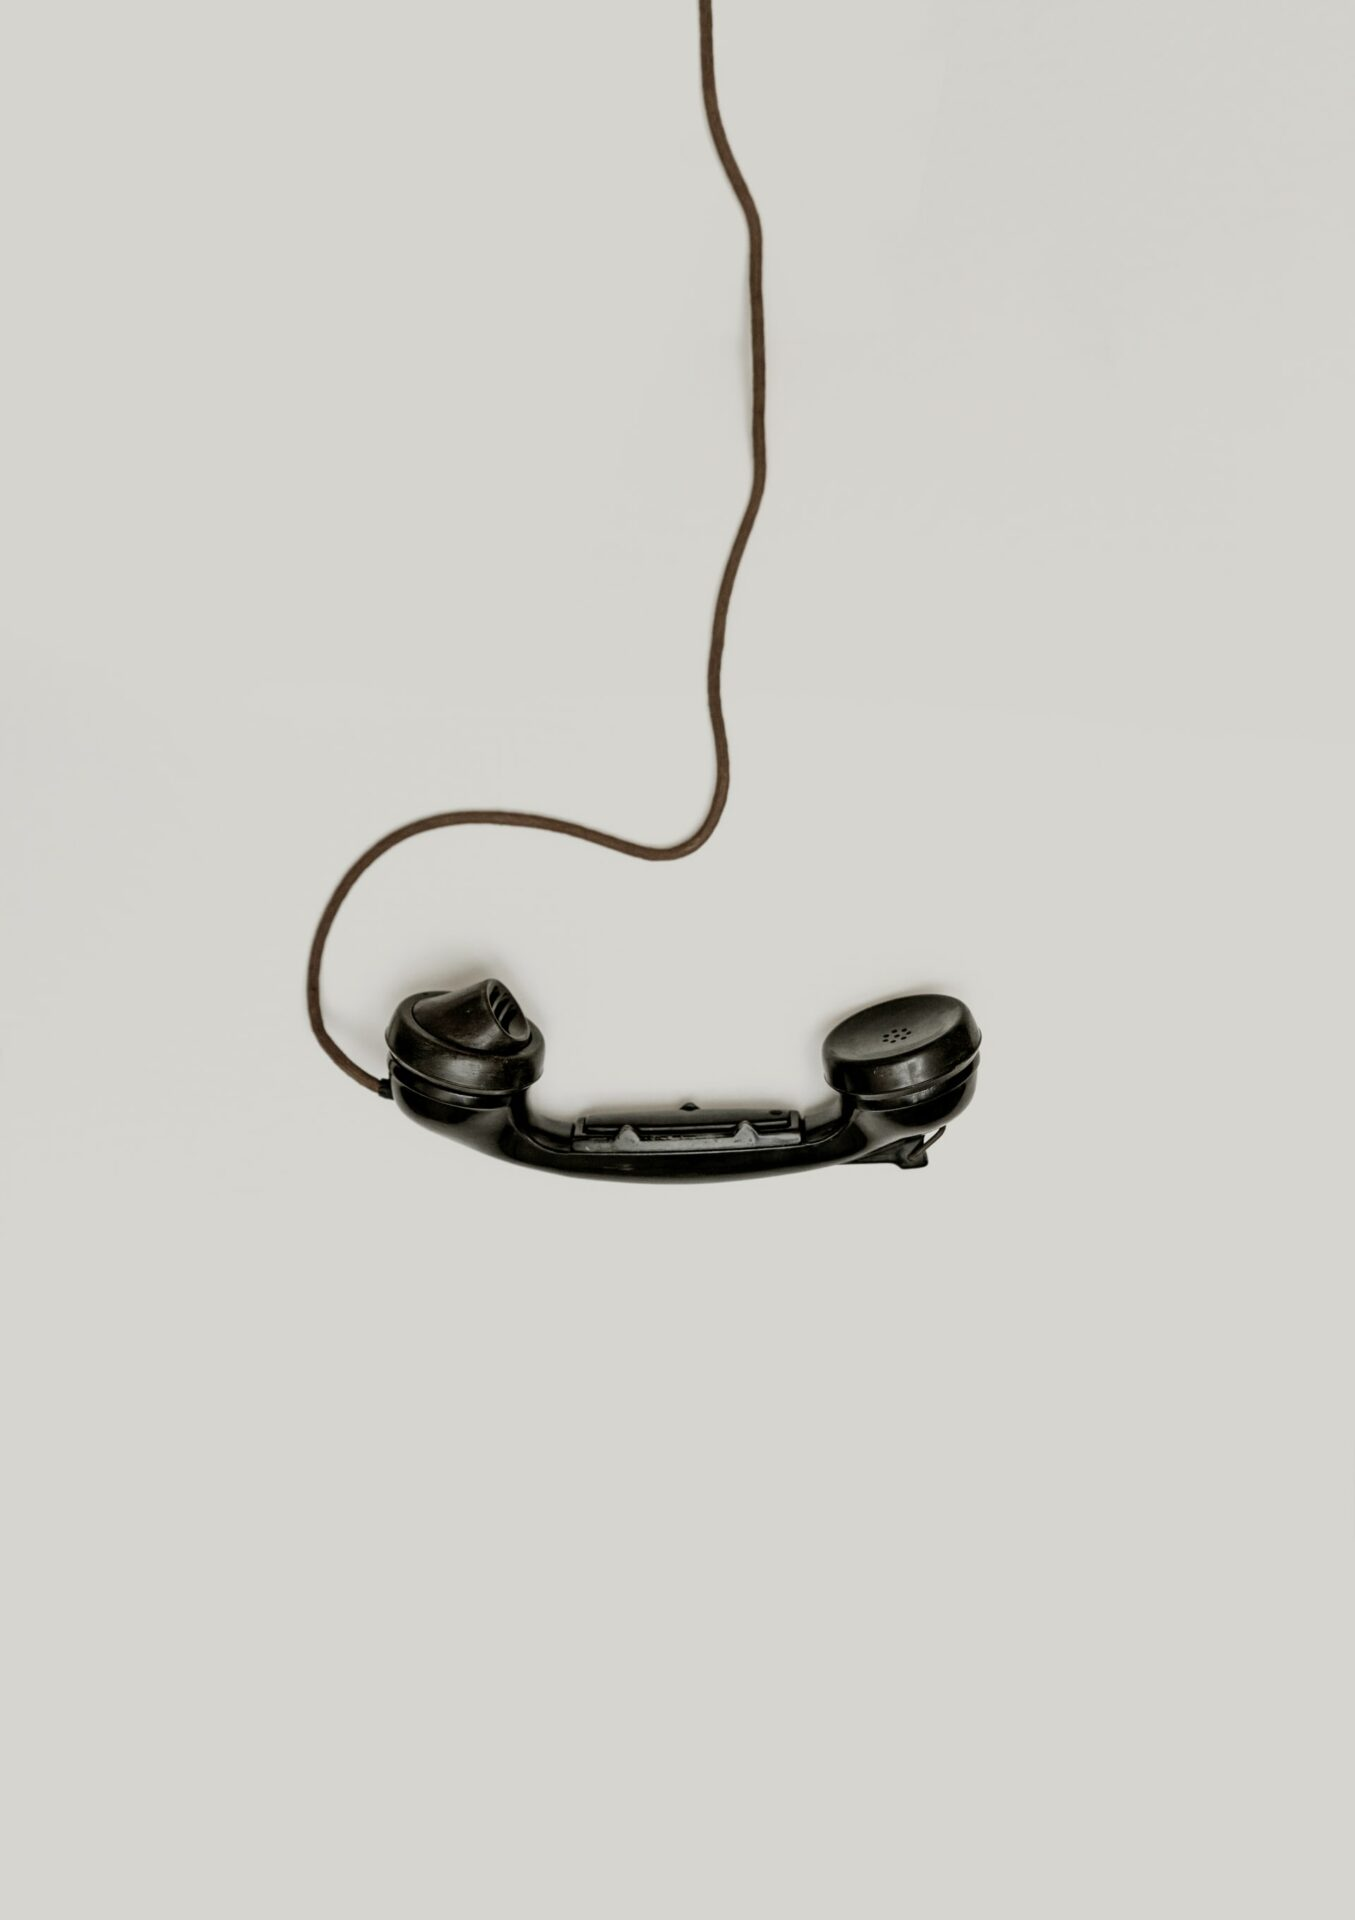 This image shows an old phone hanging from its cable.